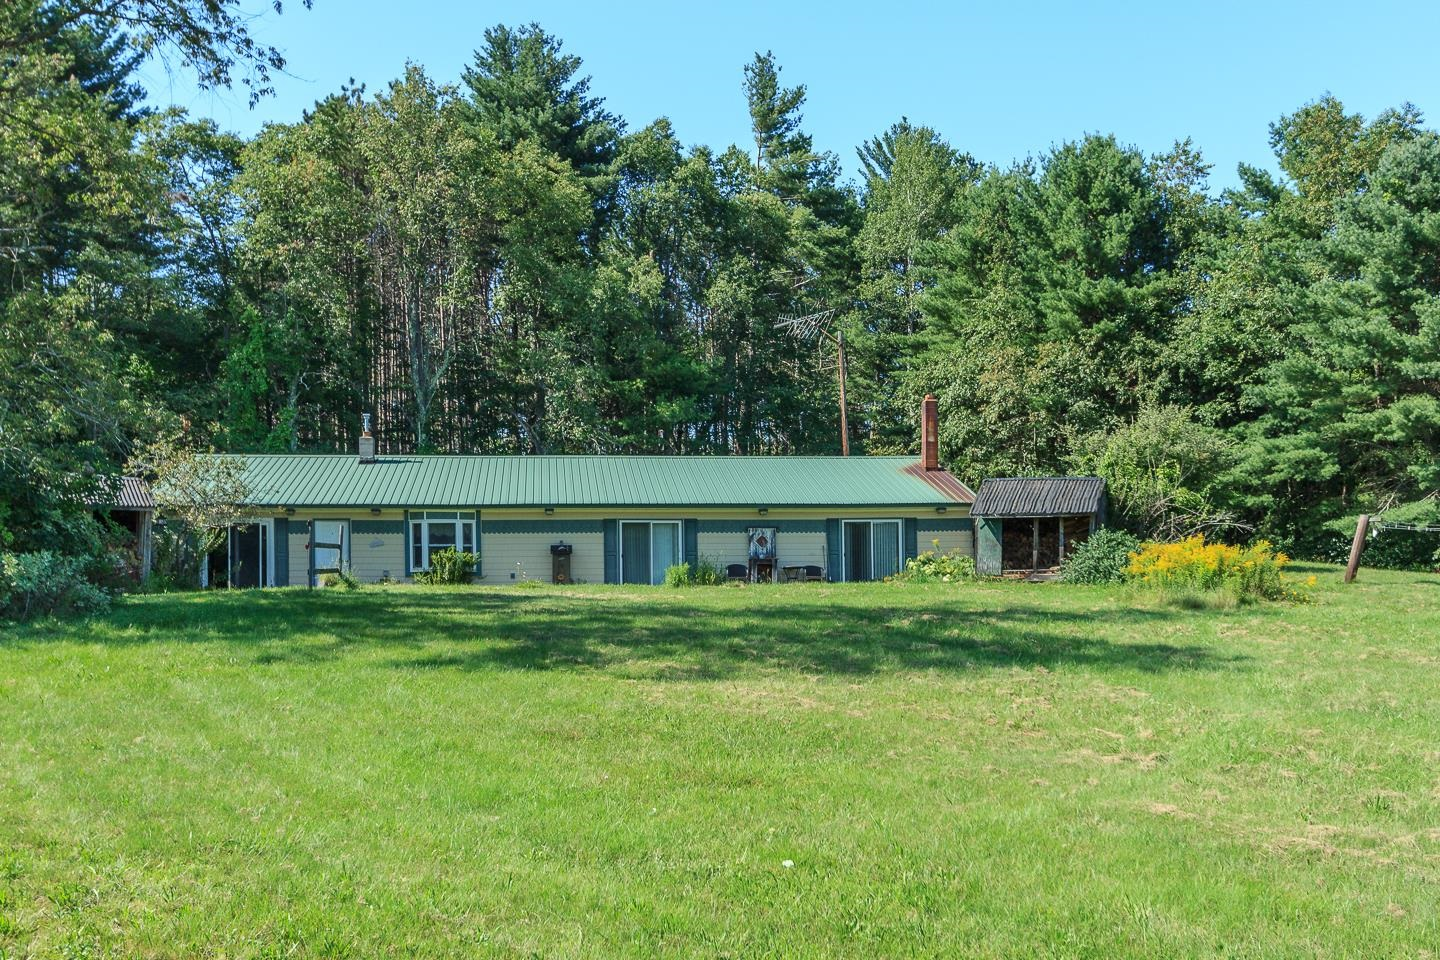 Photo of 122 Flagg Road Rochester NH 03839